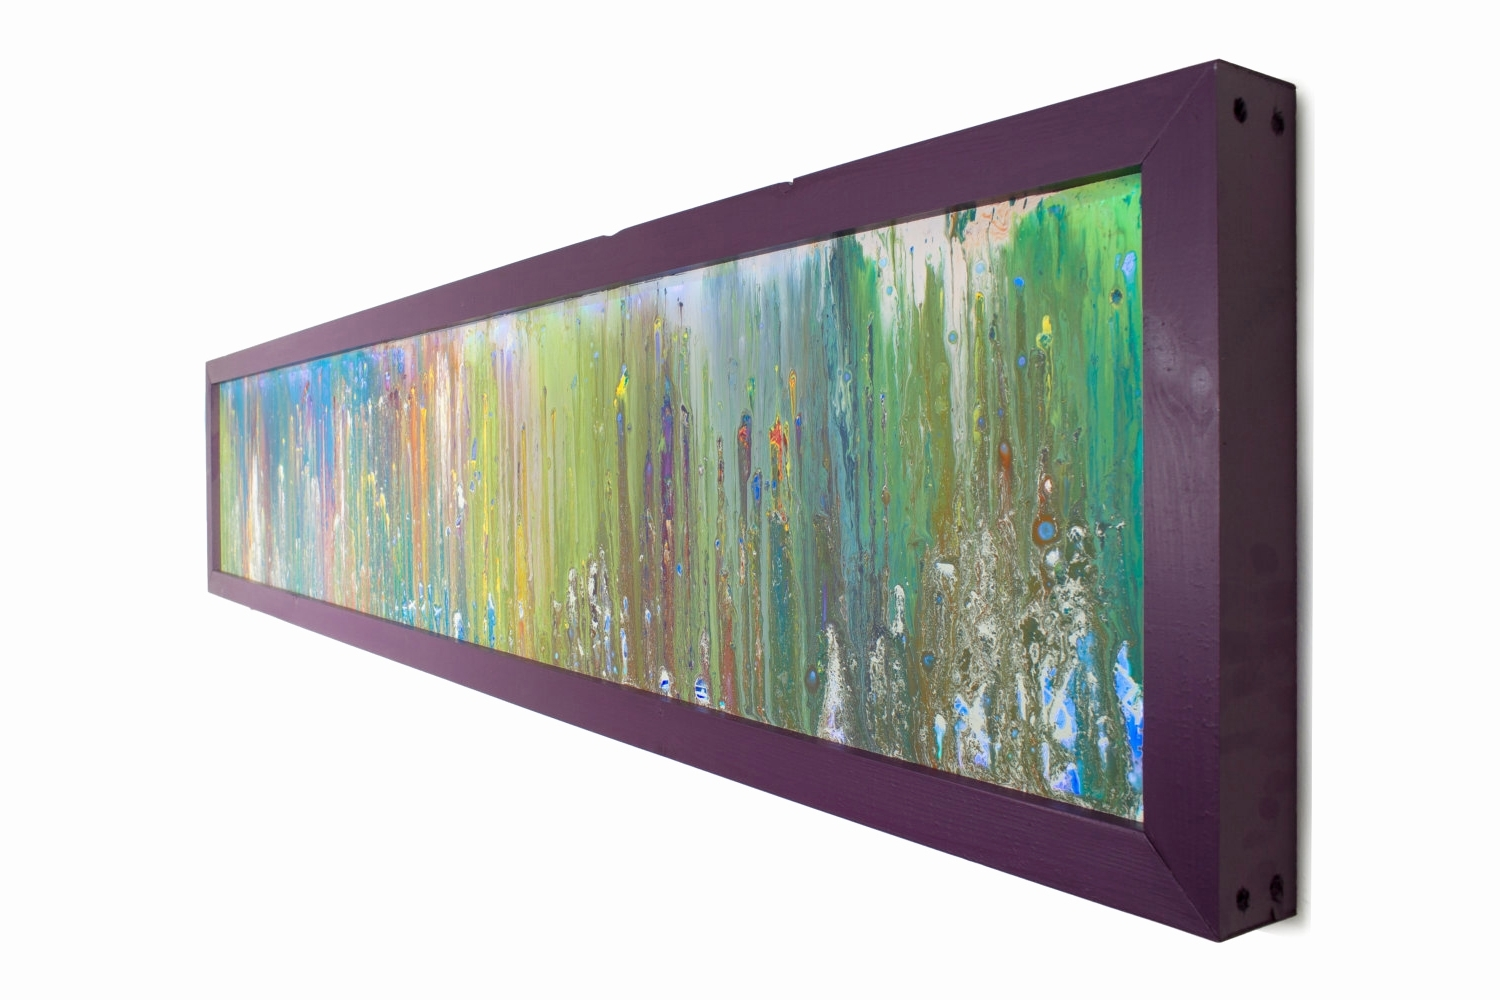 Best And Newest Modern Glass Wall Art With Regard To 7 Fav Contemporary Glass Wall Art (View 14 of 15)